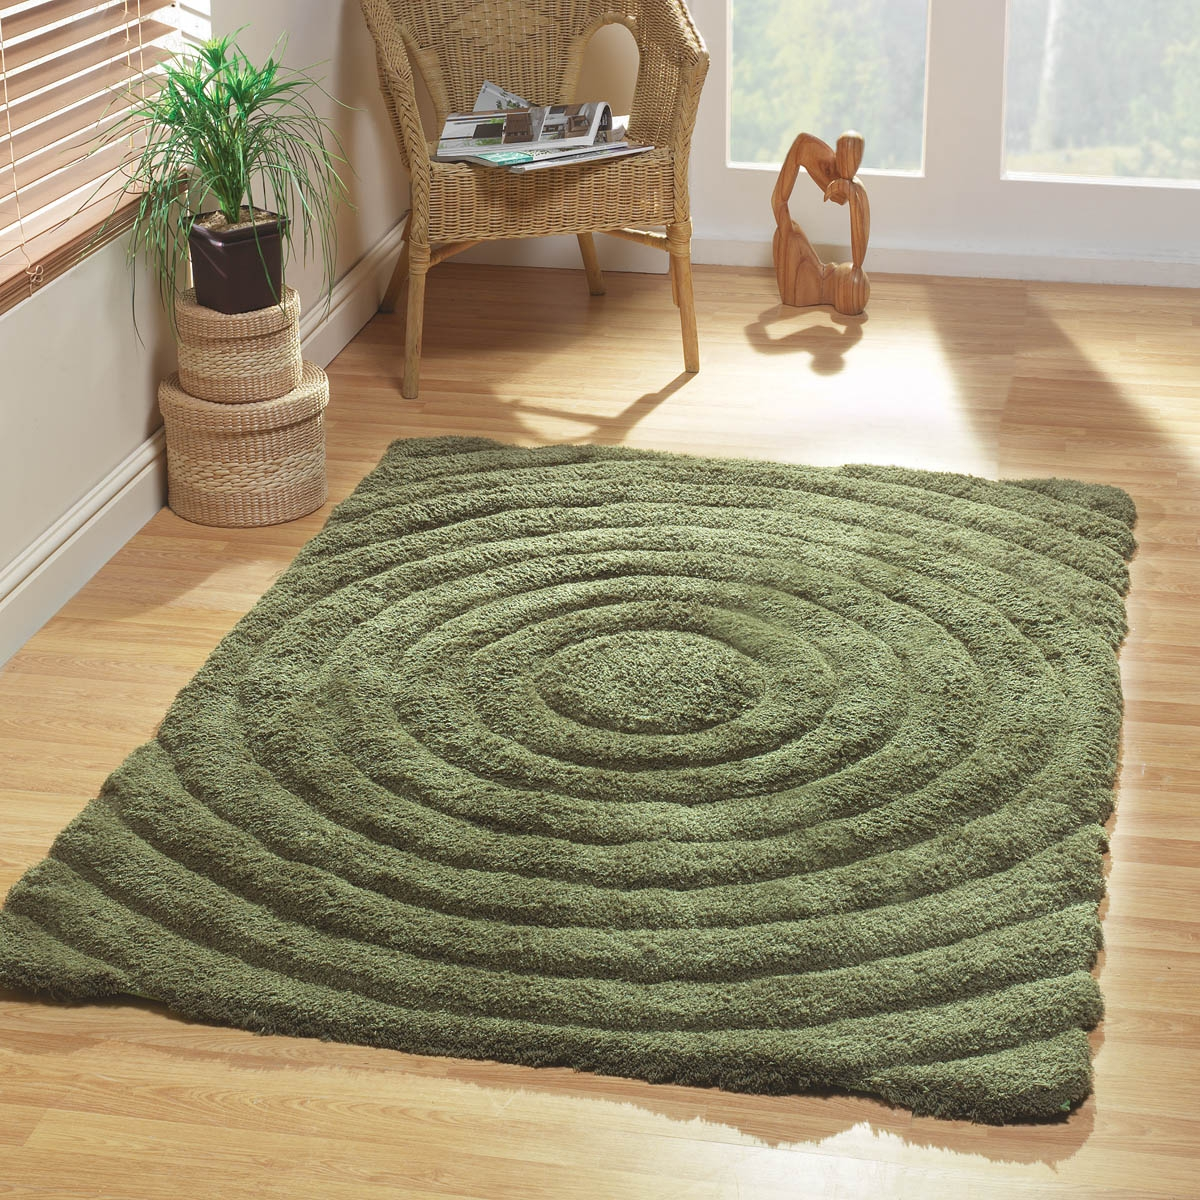 Featured Image of Olive Green Rugs